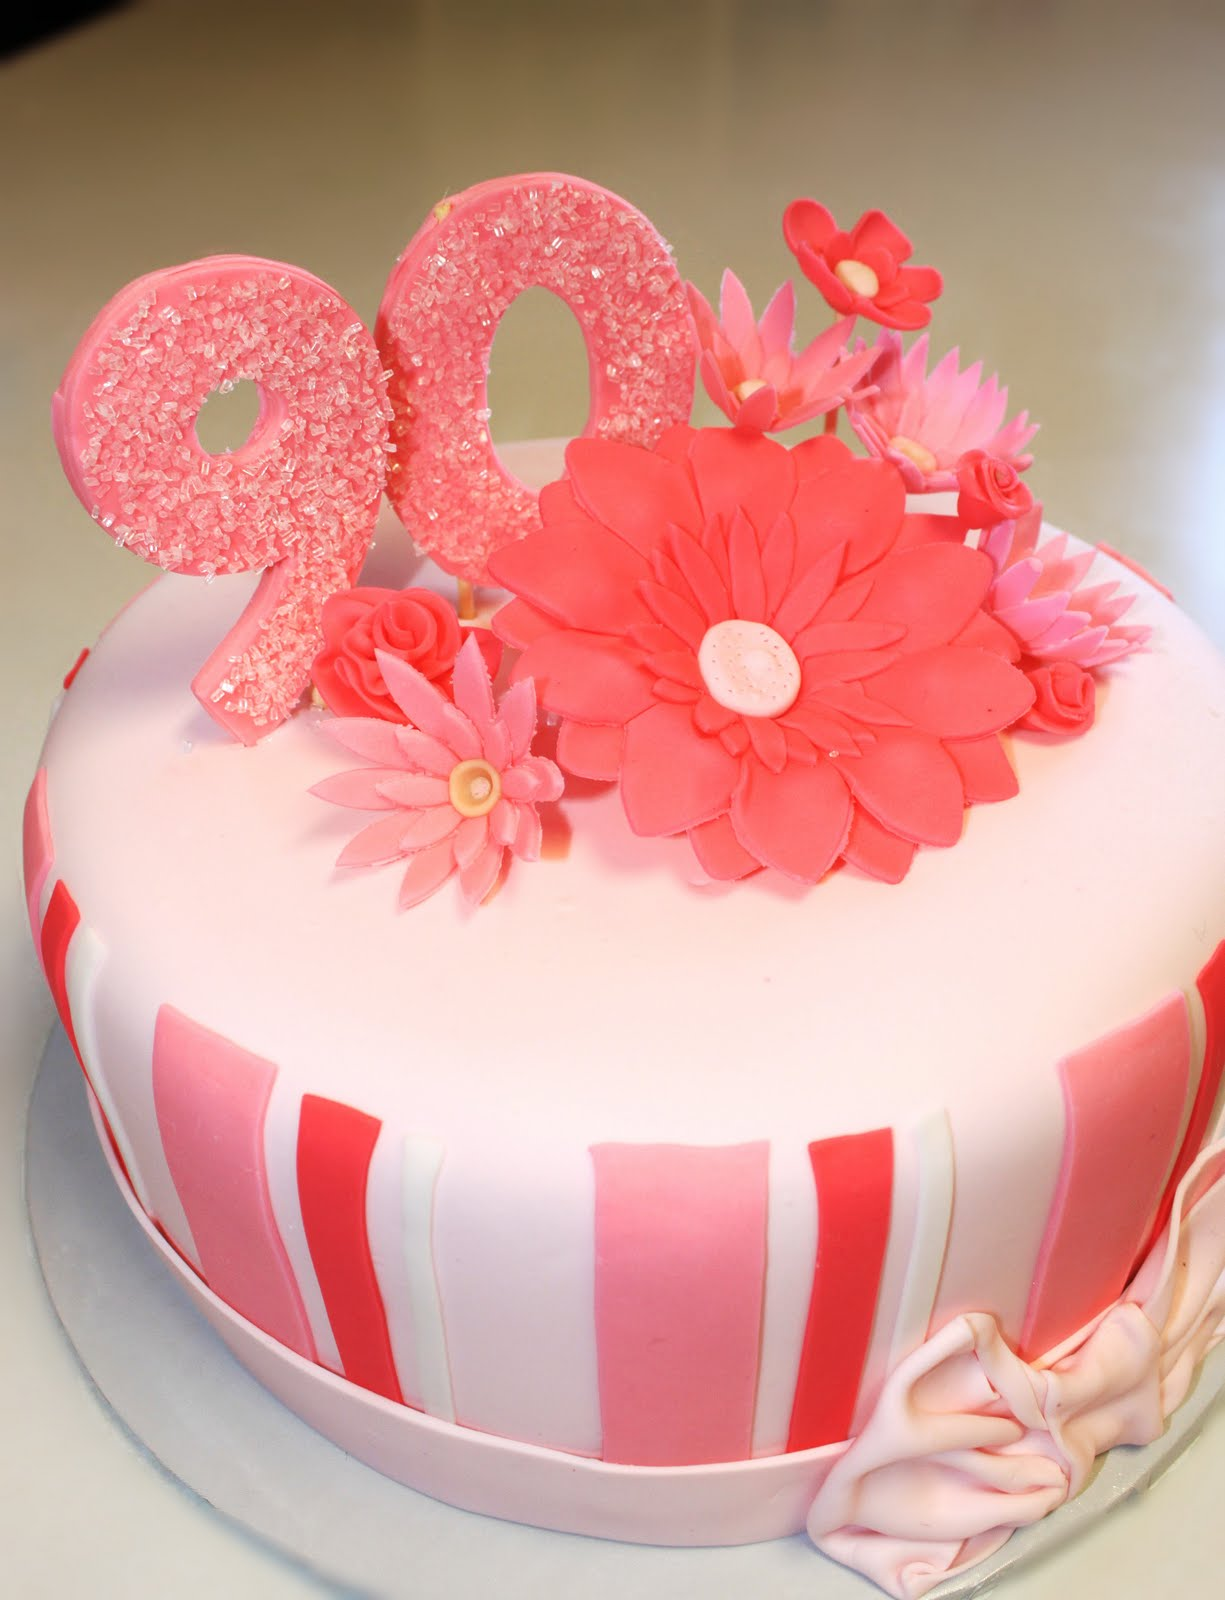 Cake Decorating Ideas For A 90 Year Old : Layers of Love: 90th birthday cake